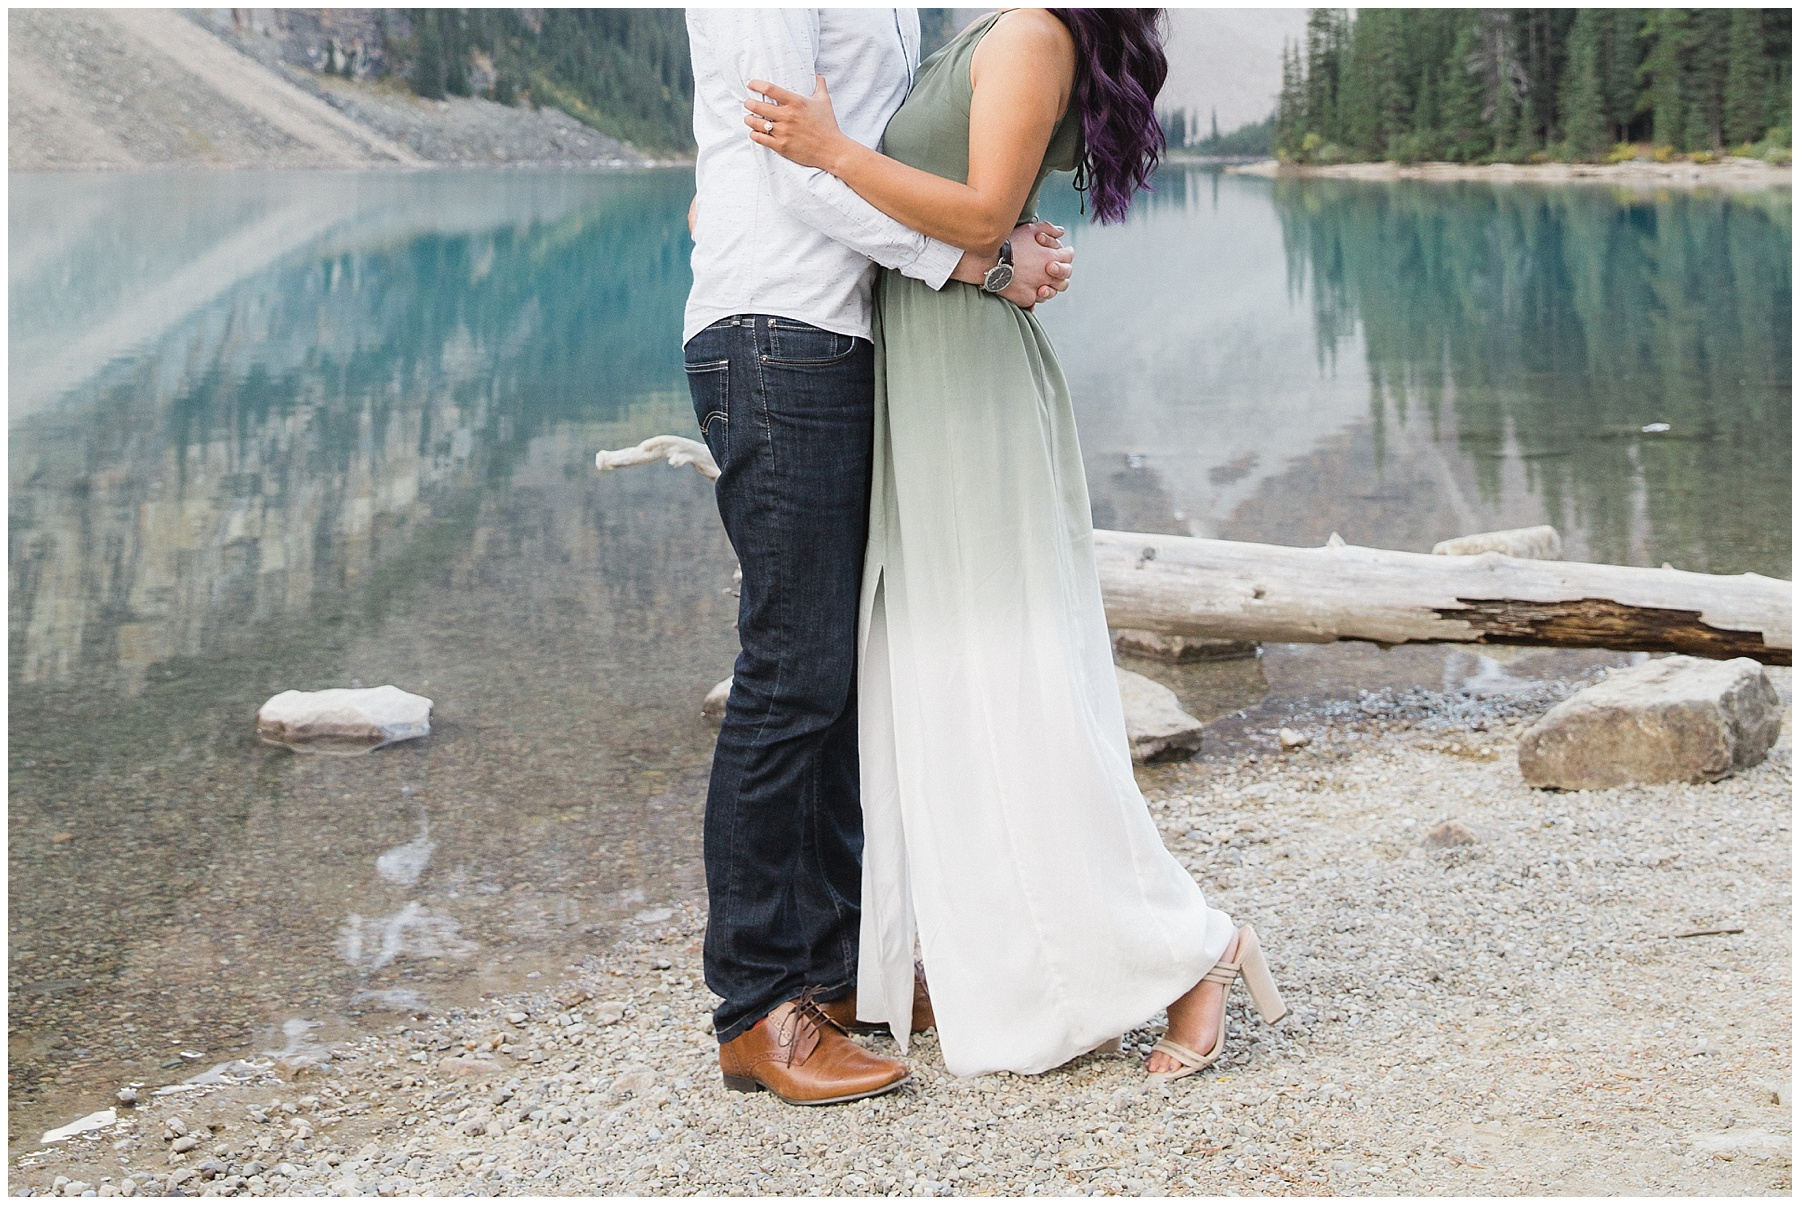 Lake_Moraine_Engagement_Photography_JandC_38_blog.jpg